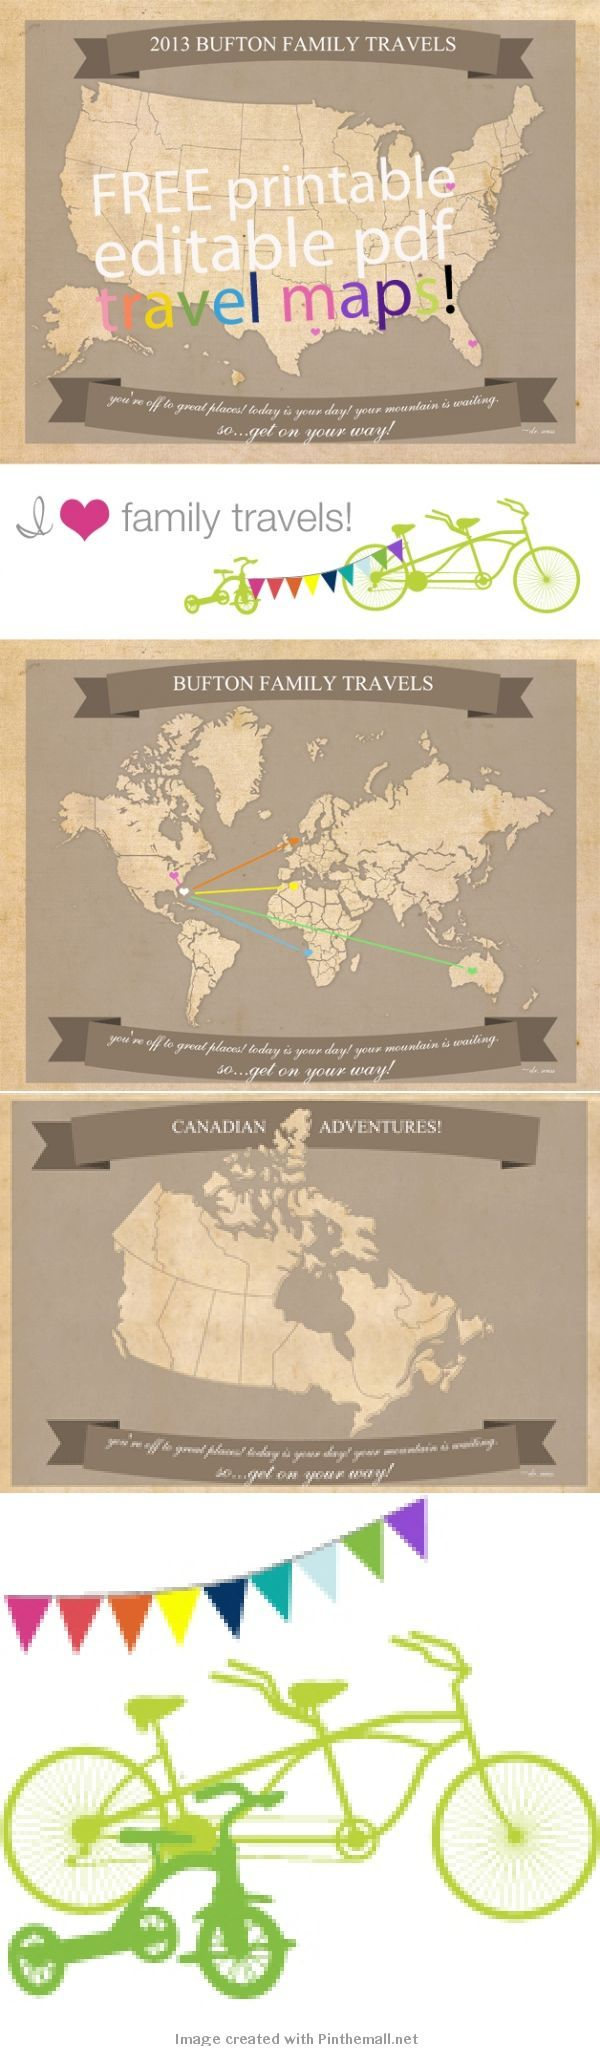 Free Printable Family Travel Maps About The Maps Printable On Us Letter Size Paper